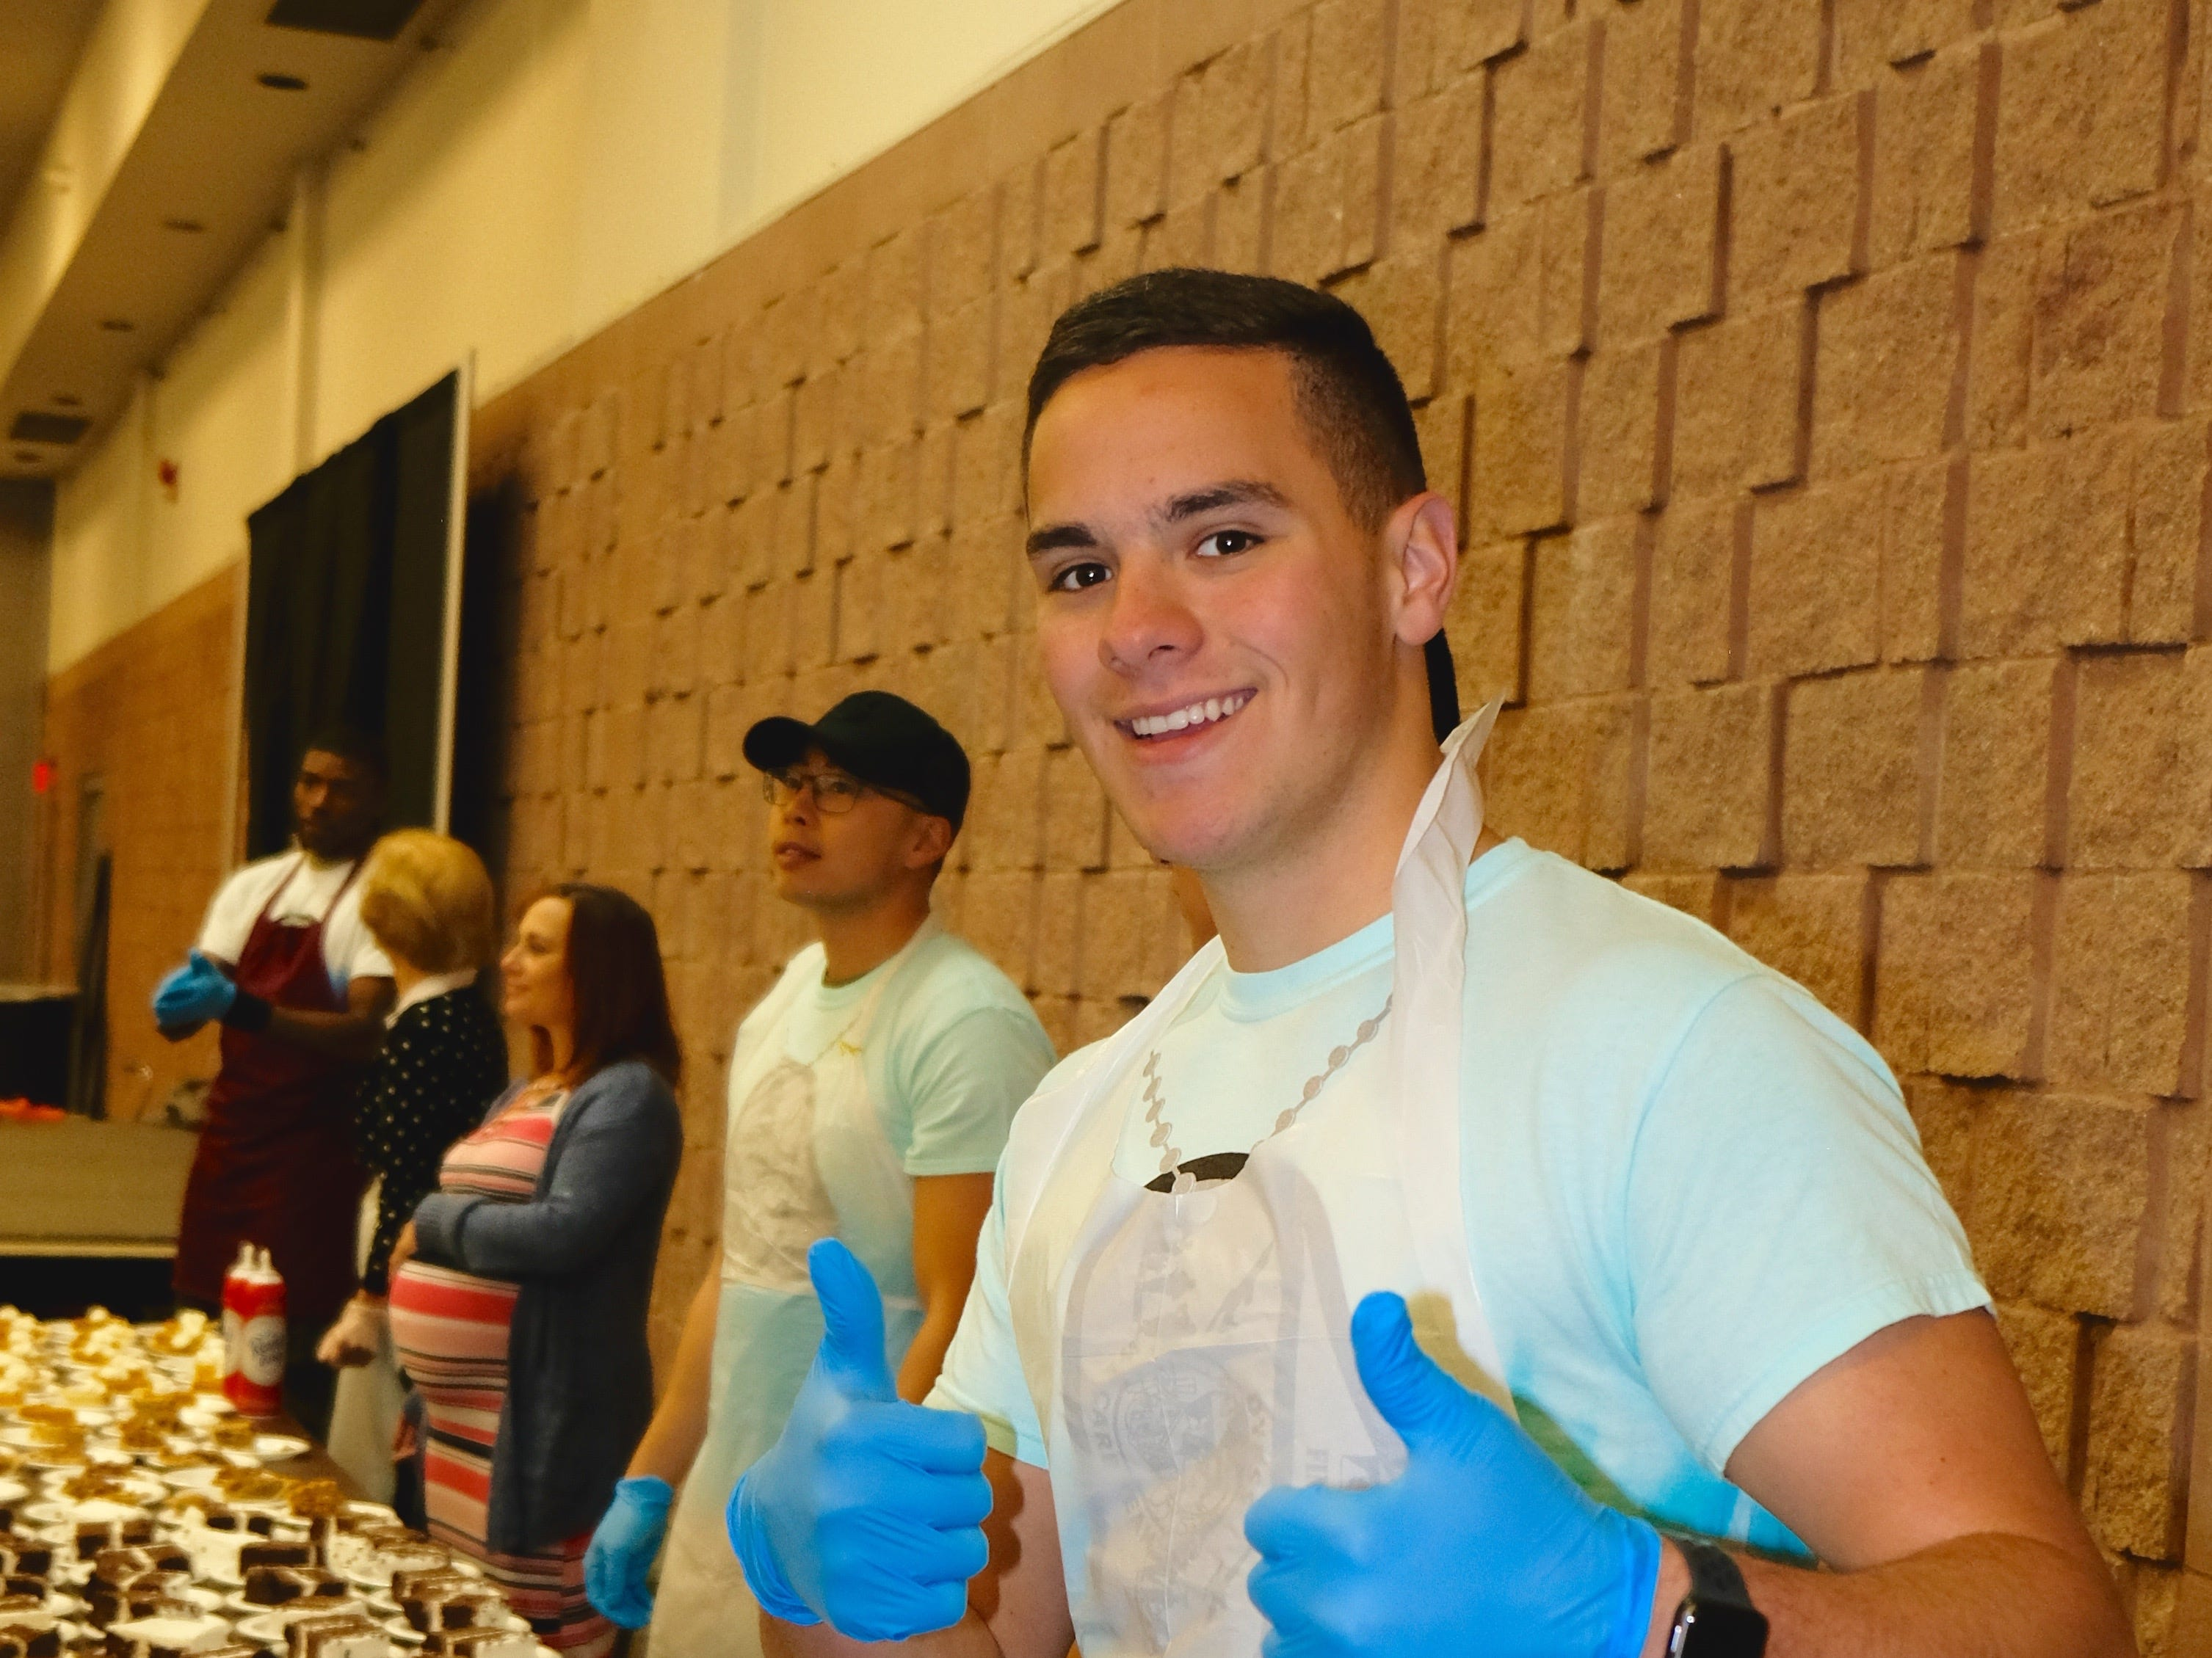 Airman 1st Class Kevin Archbold, of the 7th Component Maintenance Squadron, organizes desserts at the Veterans Thanksgiving Dinner.